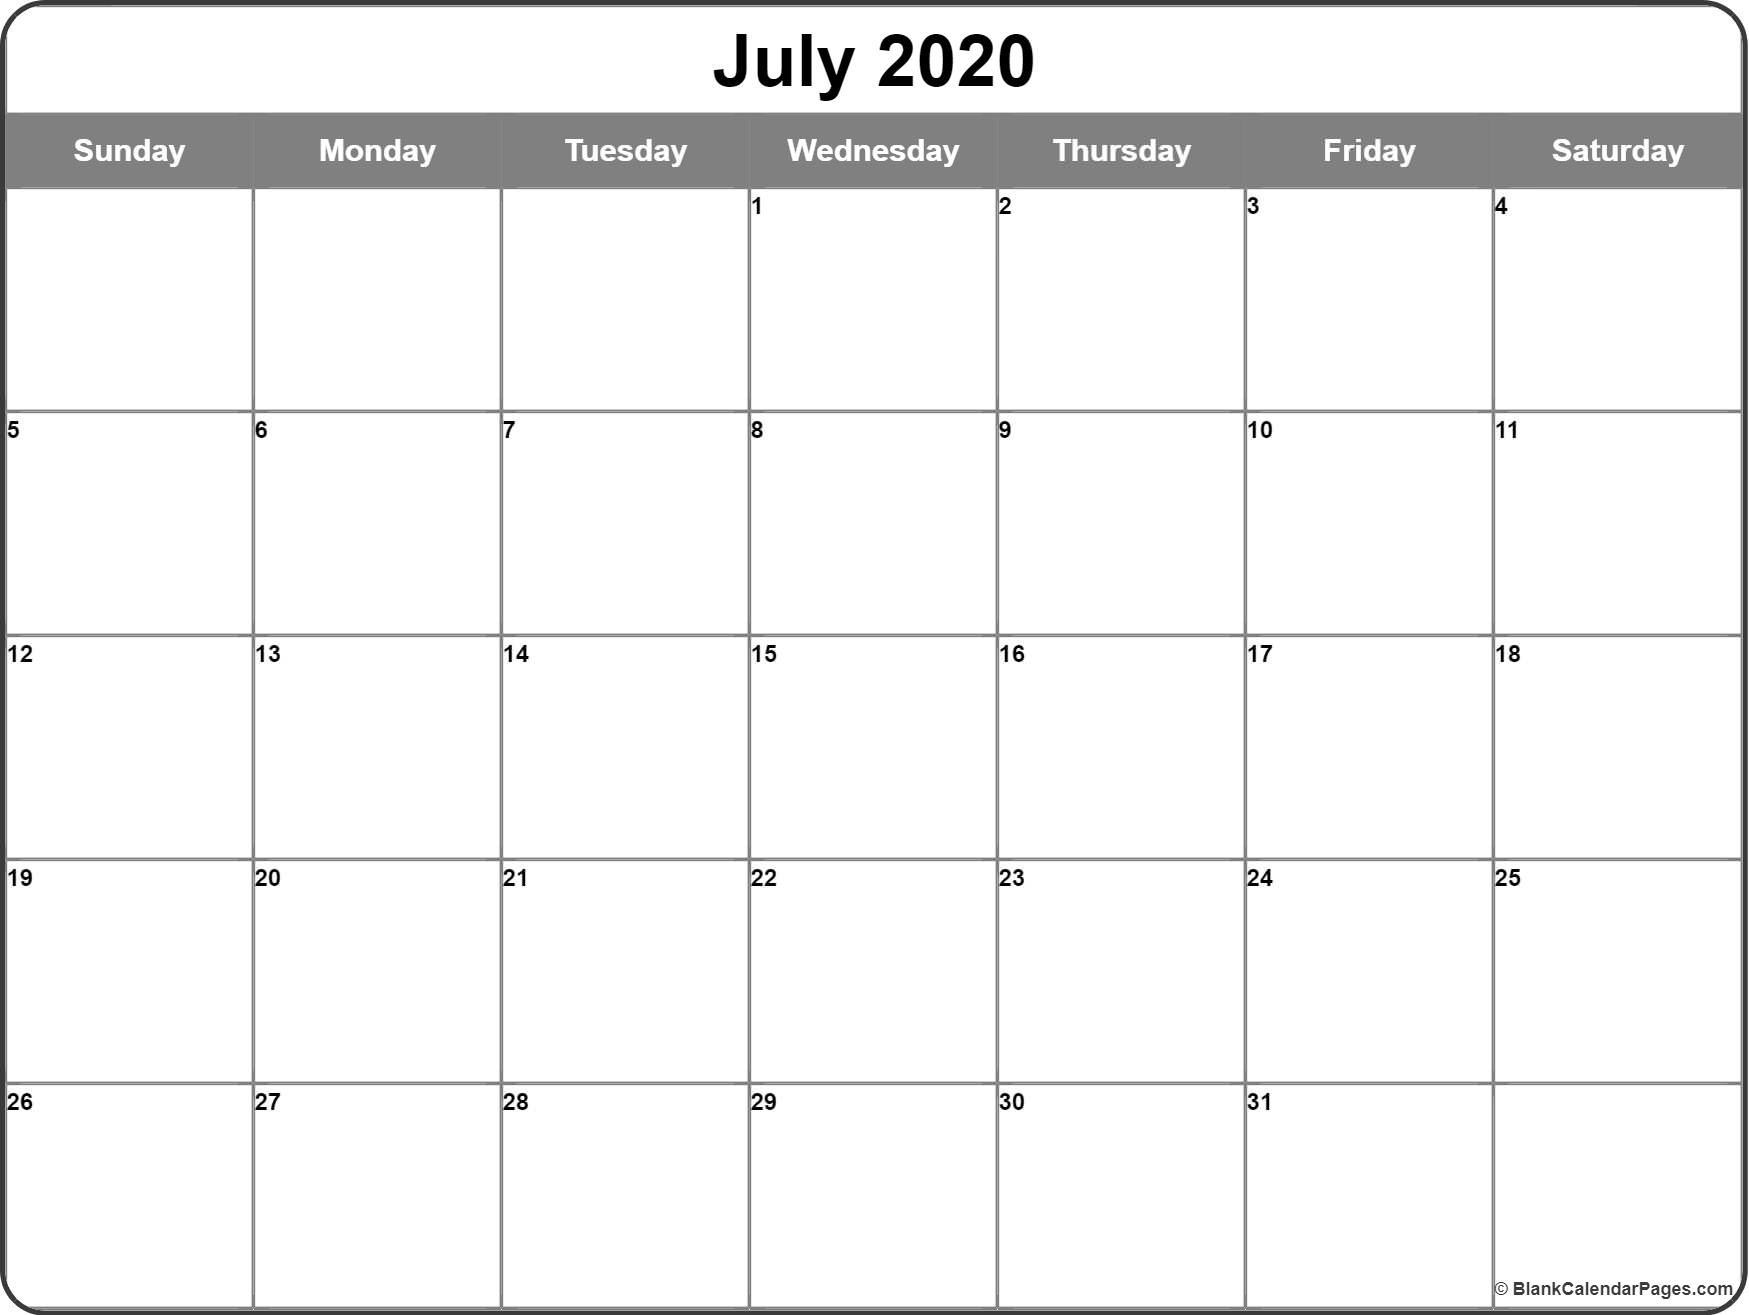 July 2020 Calendar | Free Printable Monthly Calendars-Calendar 2020 Template For Summer Camp Schedule